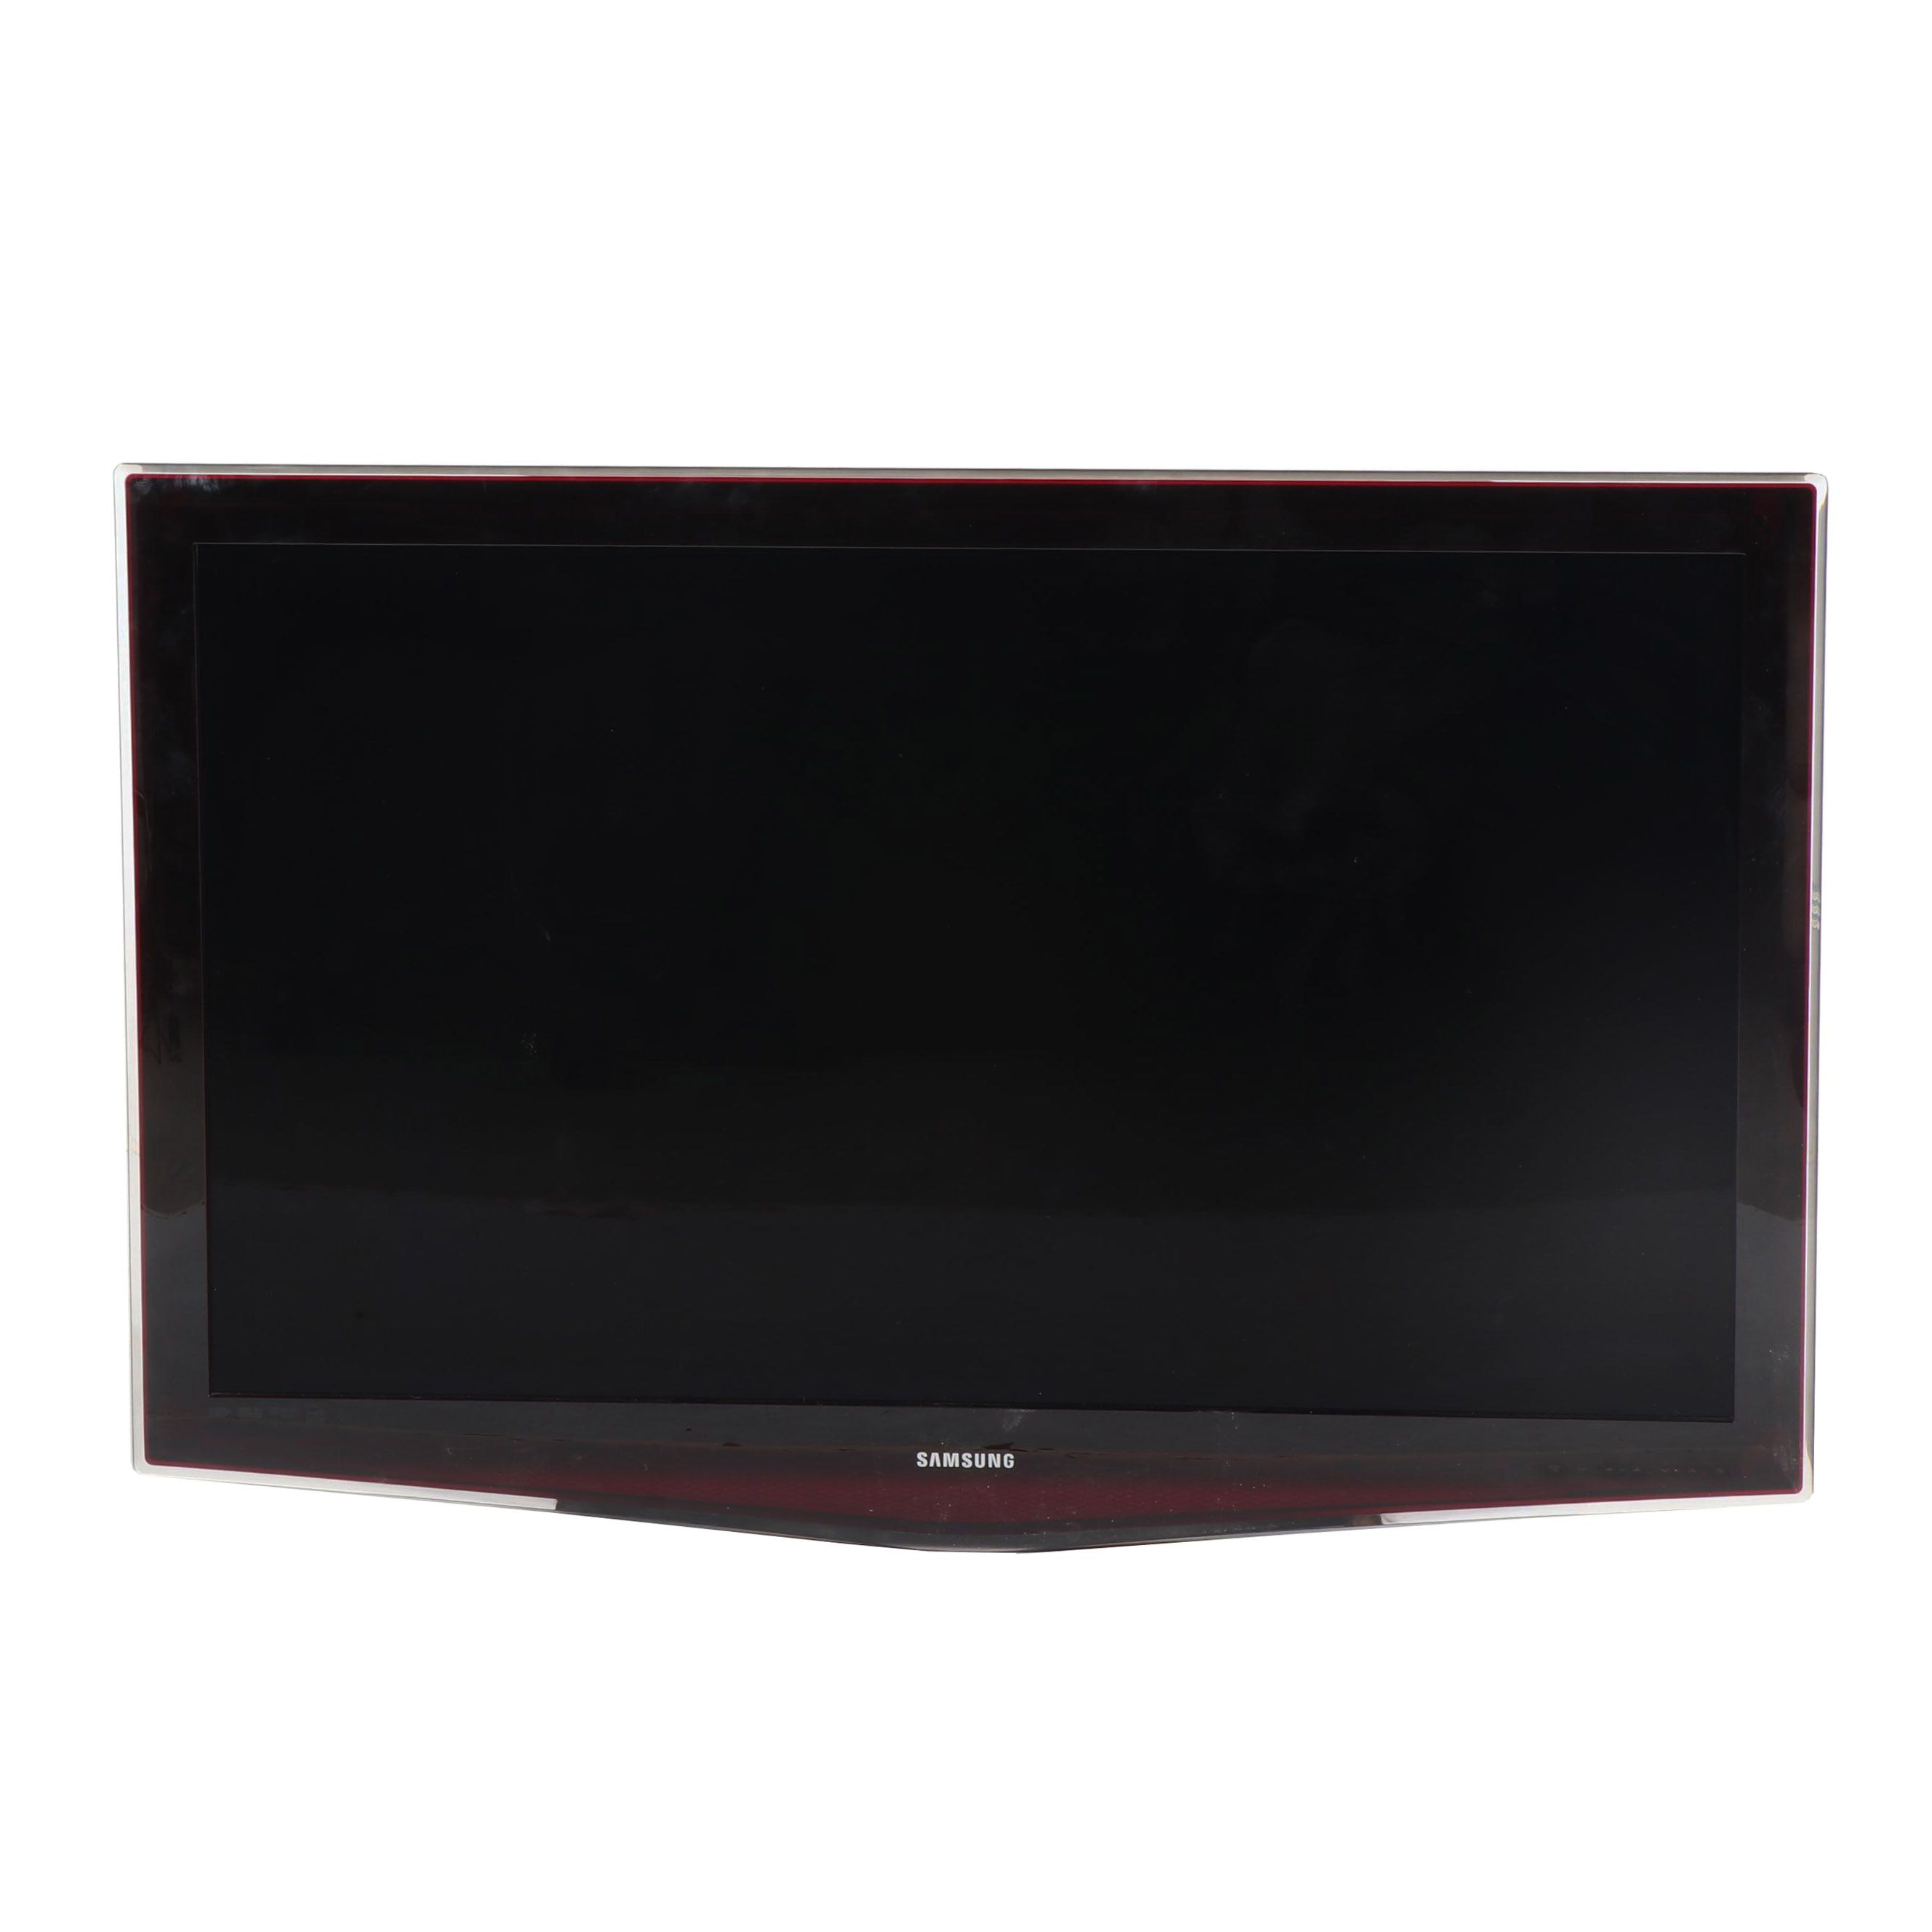 """Samsung 46"""" 1080p LCD High Definition Television"""